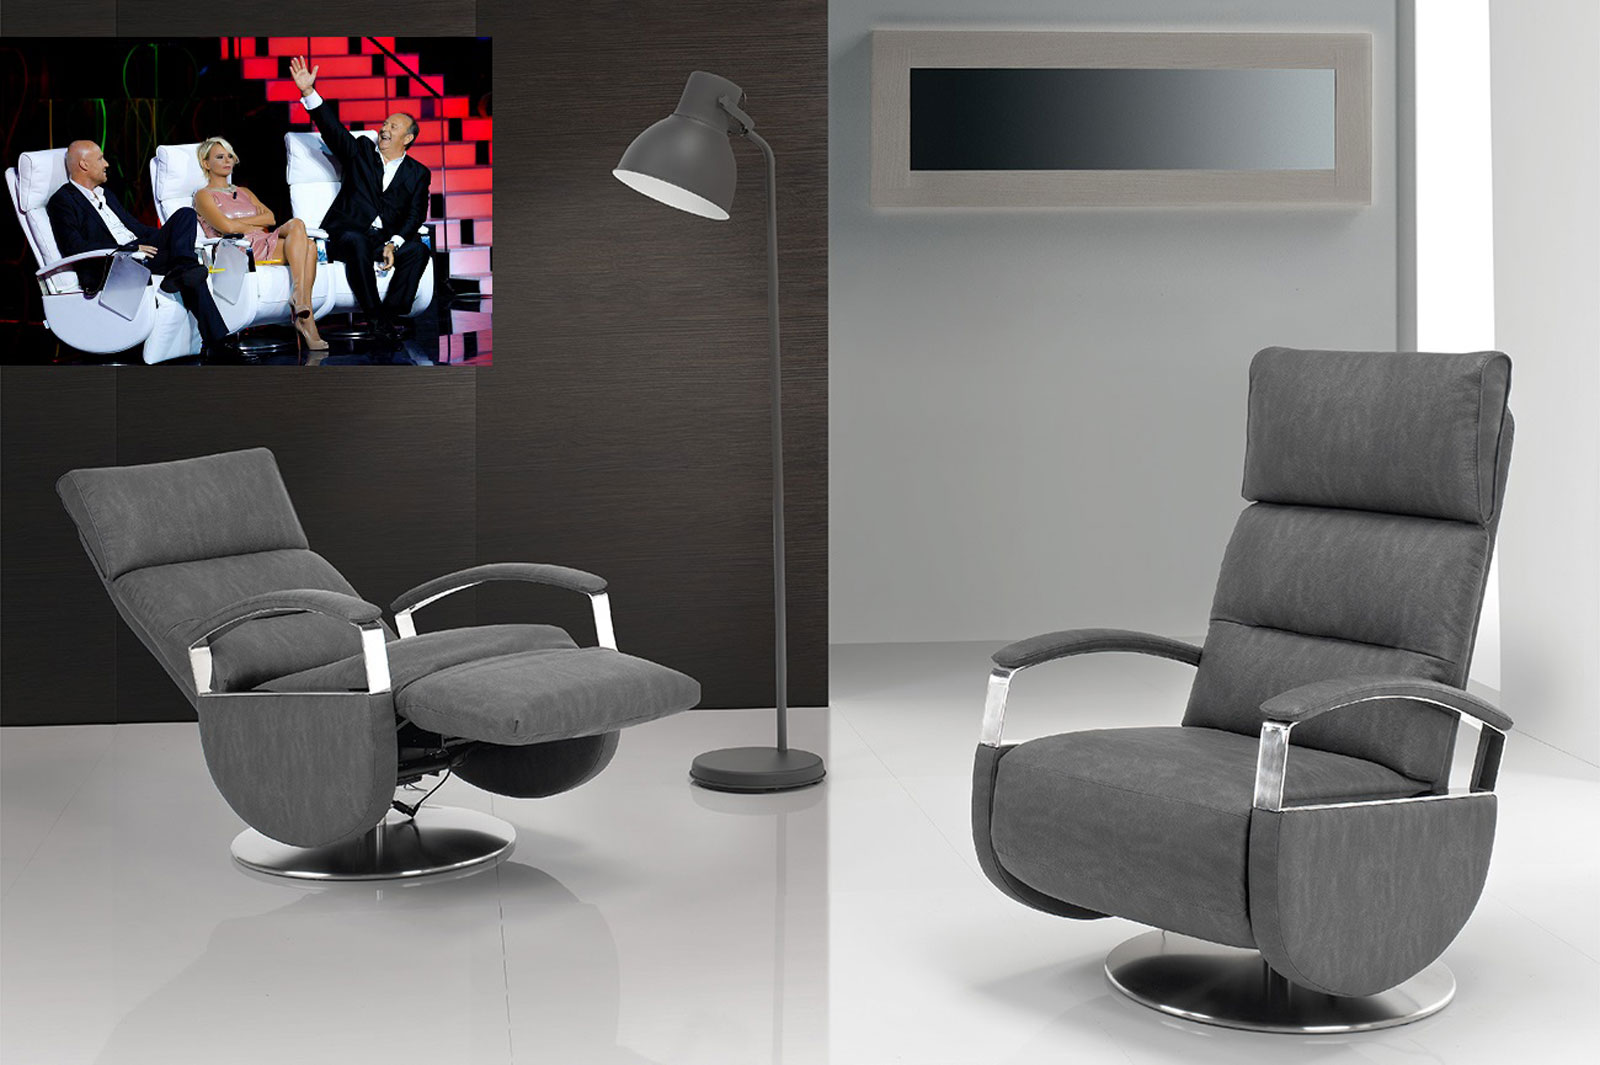 poltrone relax design viste in tv  foto grande  Poltrone